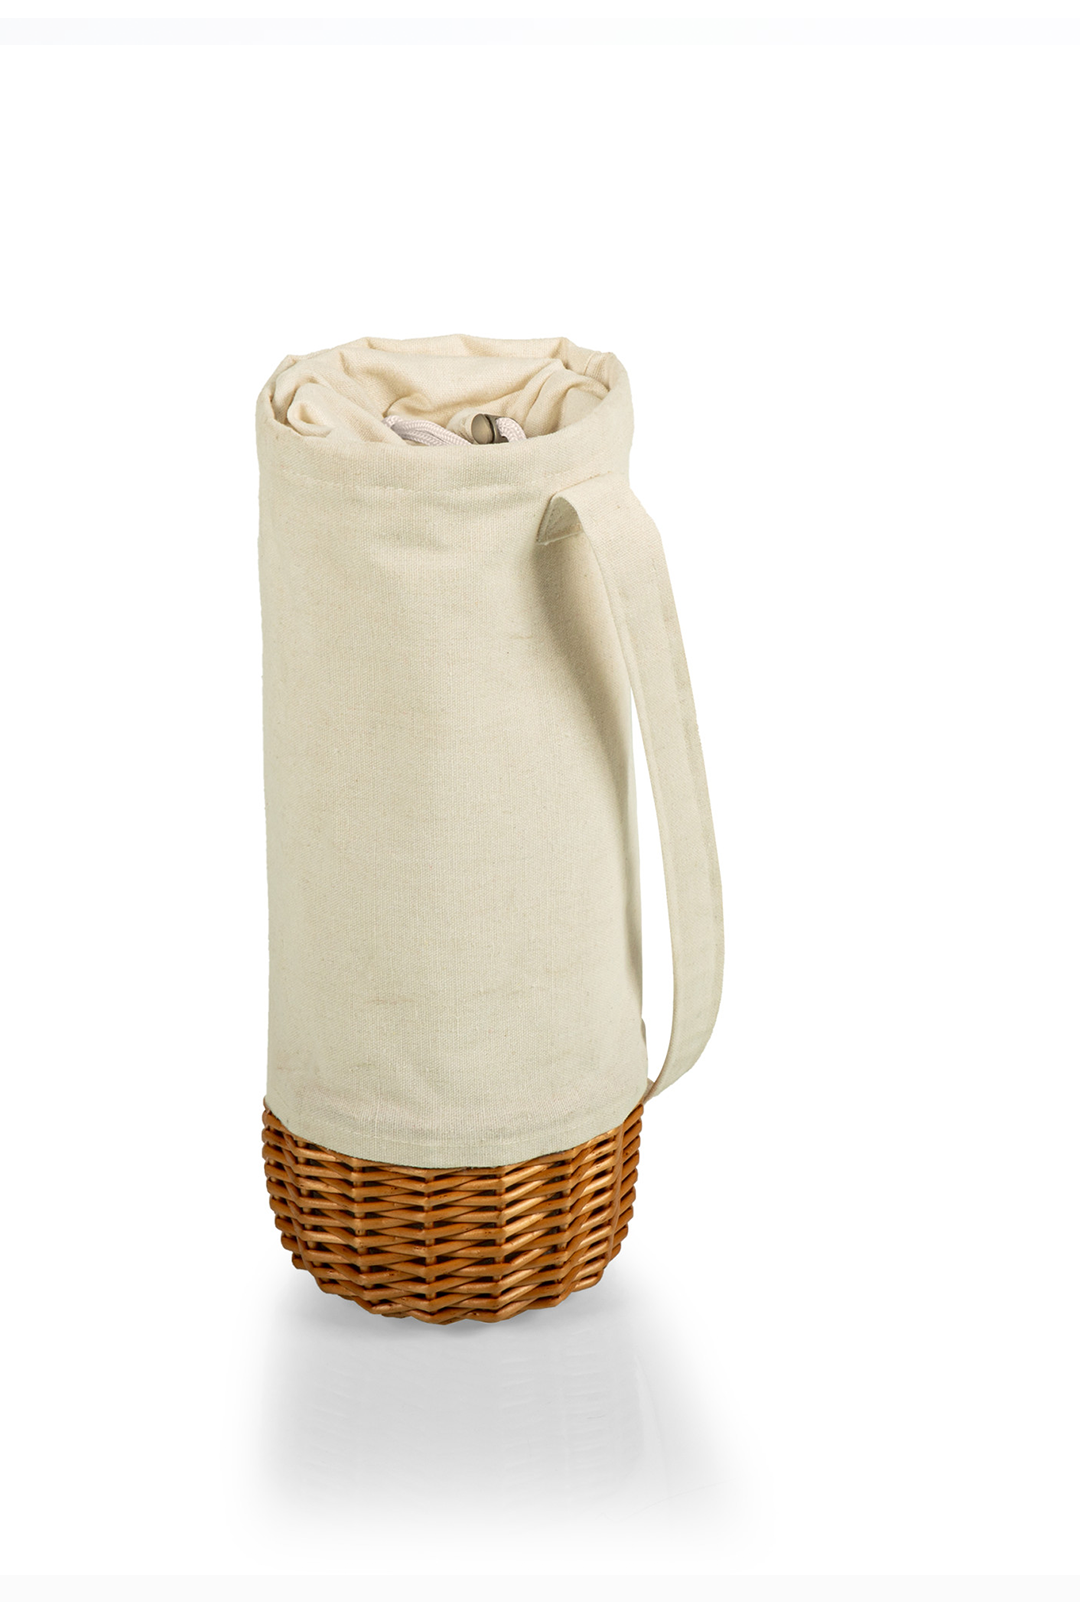 Malbec Insulated Canvas Wine Bottle Basket